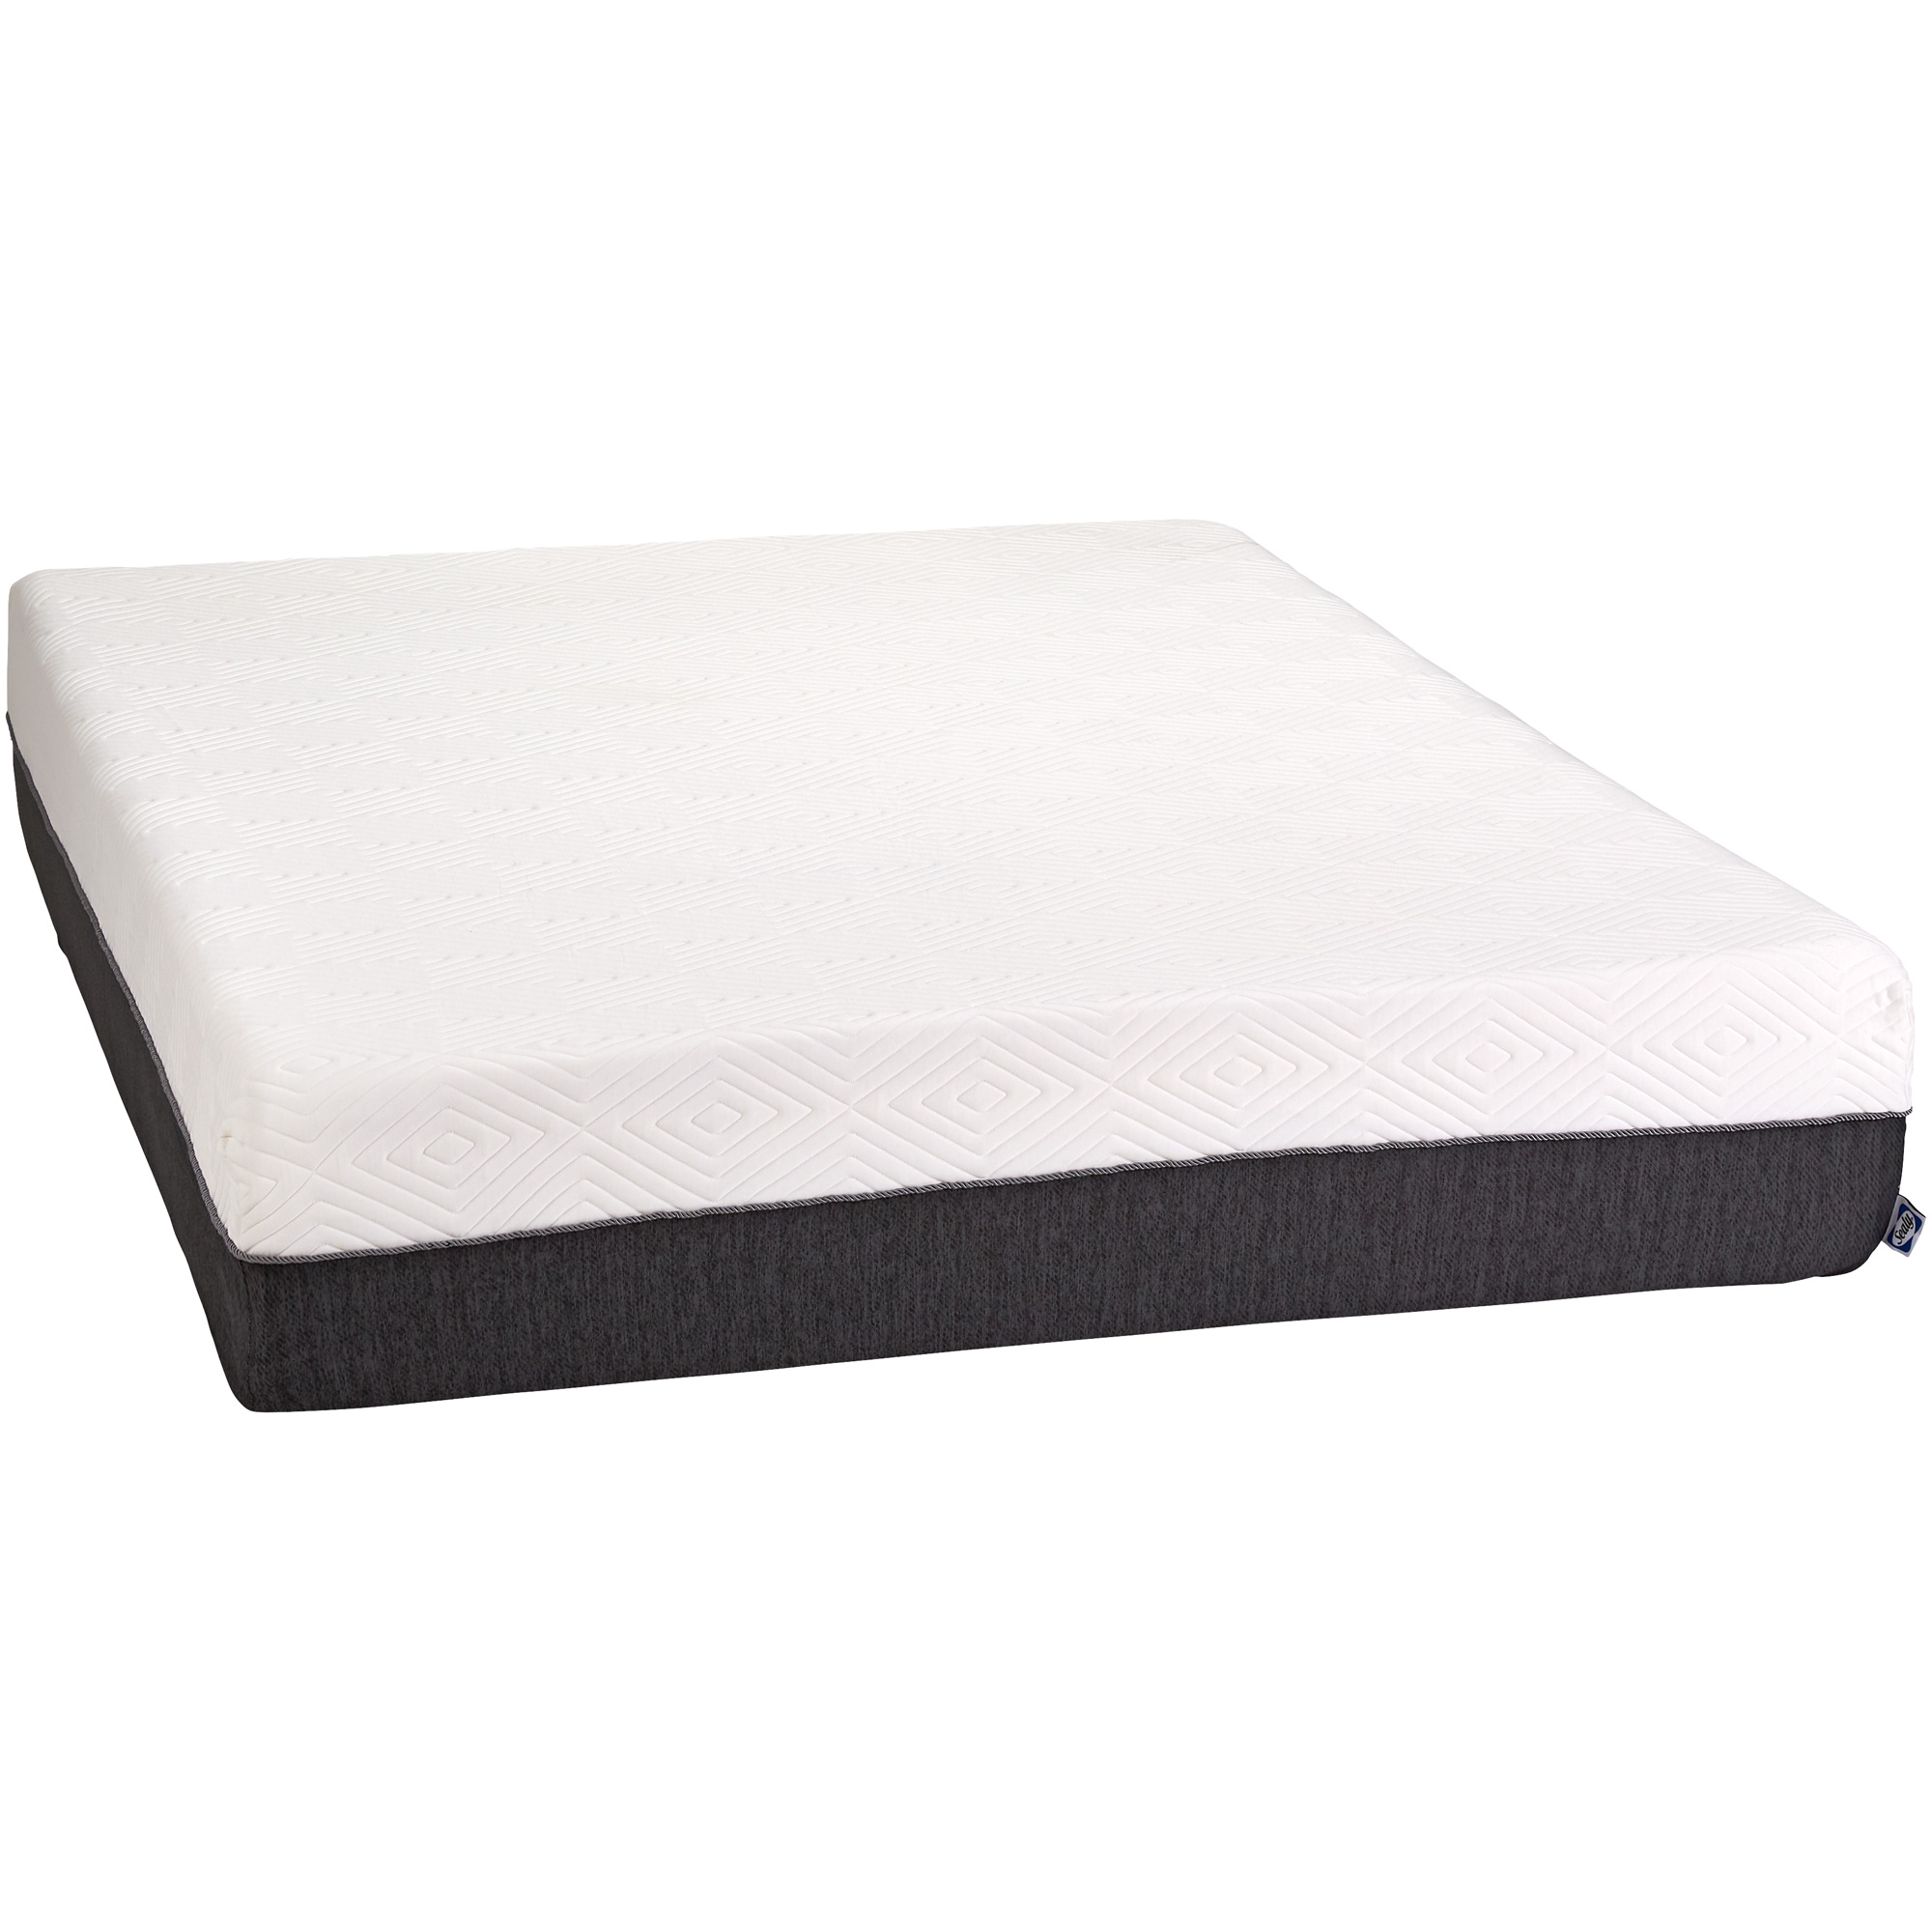 """Slumbercrest 12"""" Memory Foam Full Mattress in a Box"""